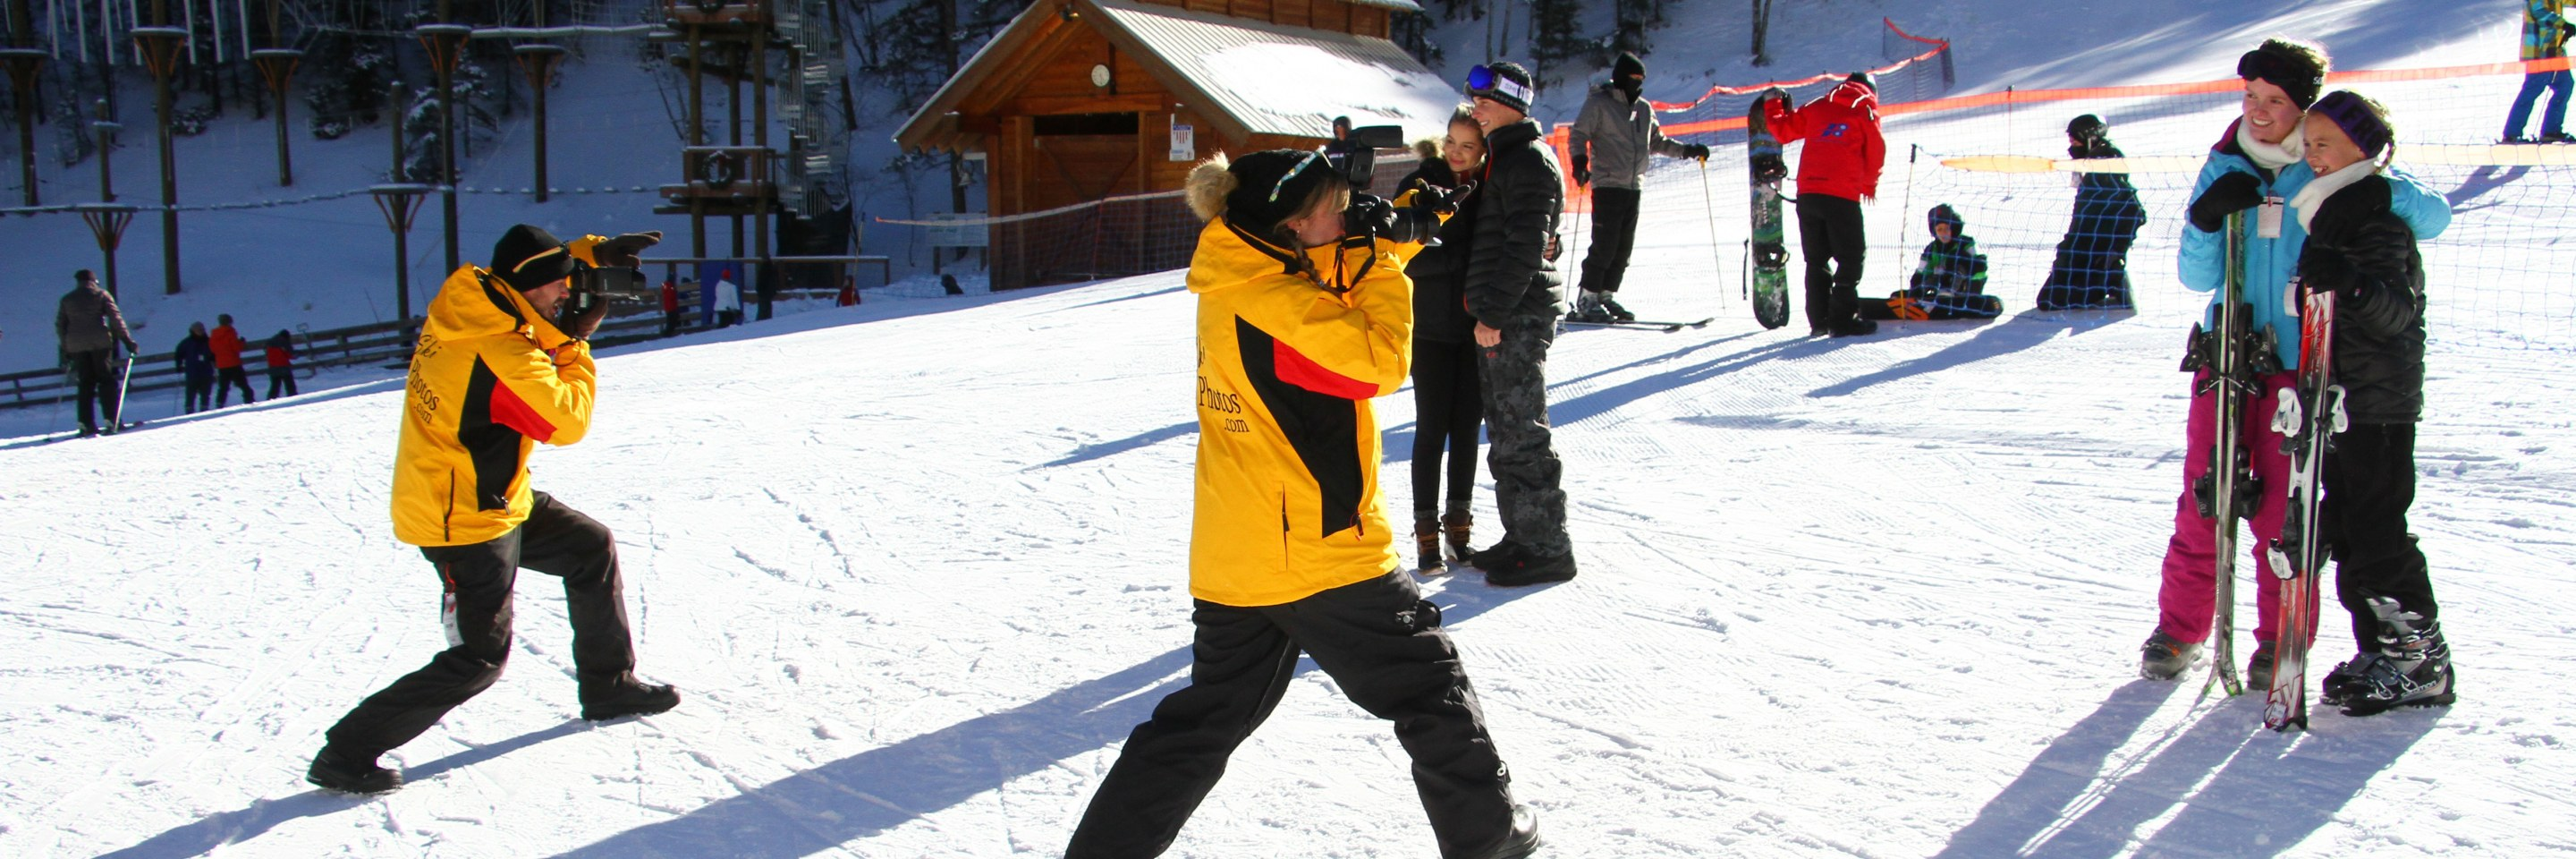 photographers taking photos of people skiing